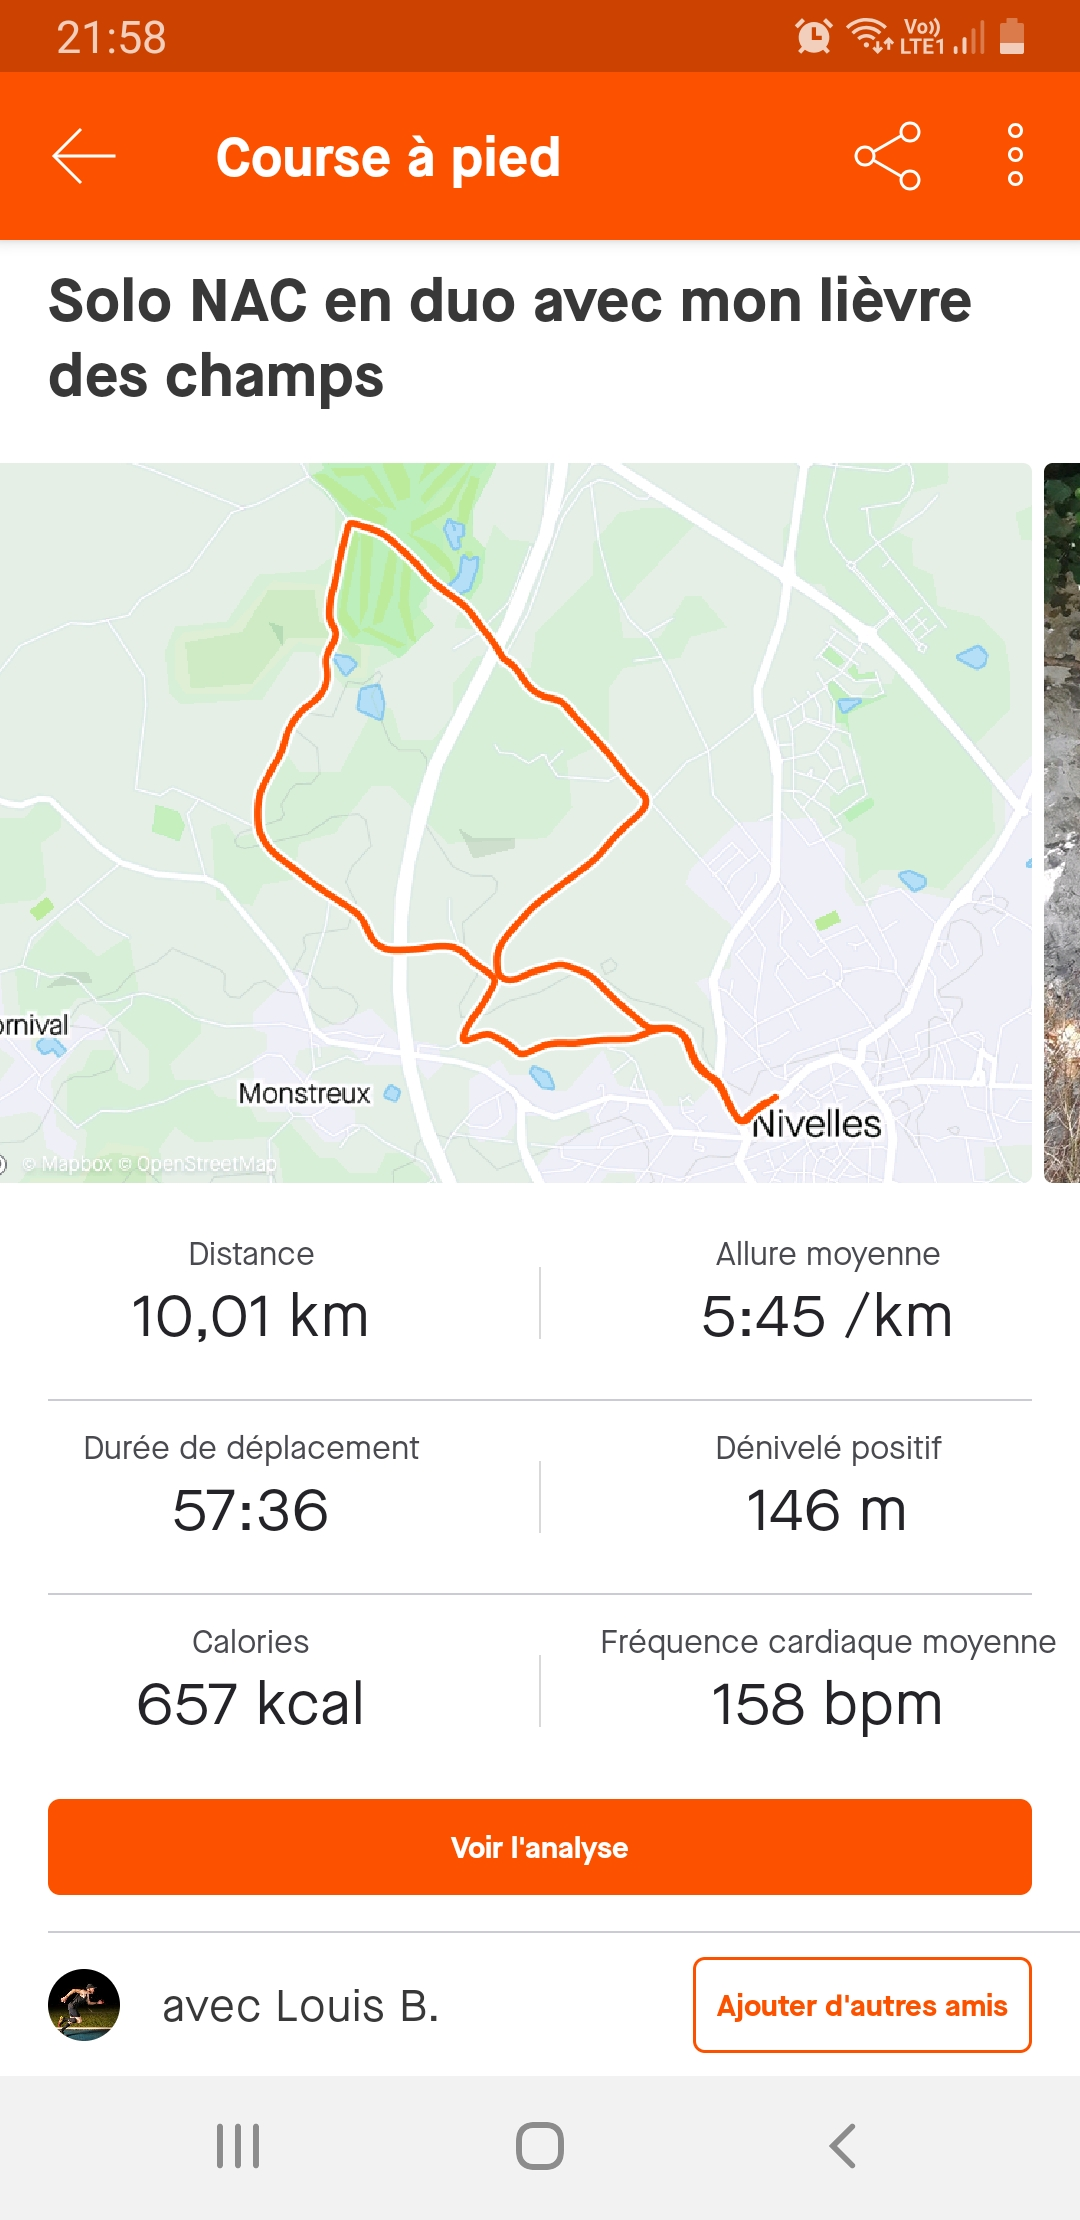 Mary parcours